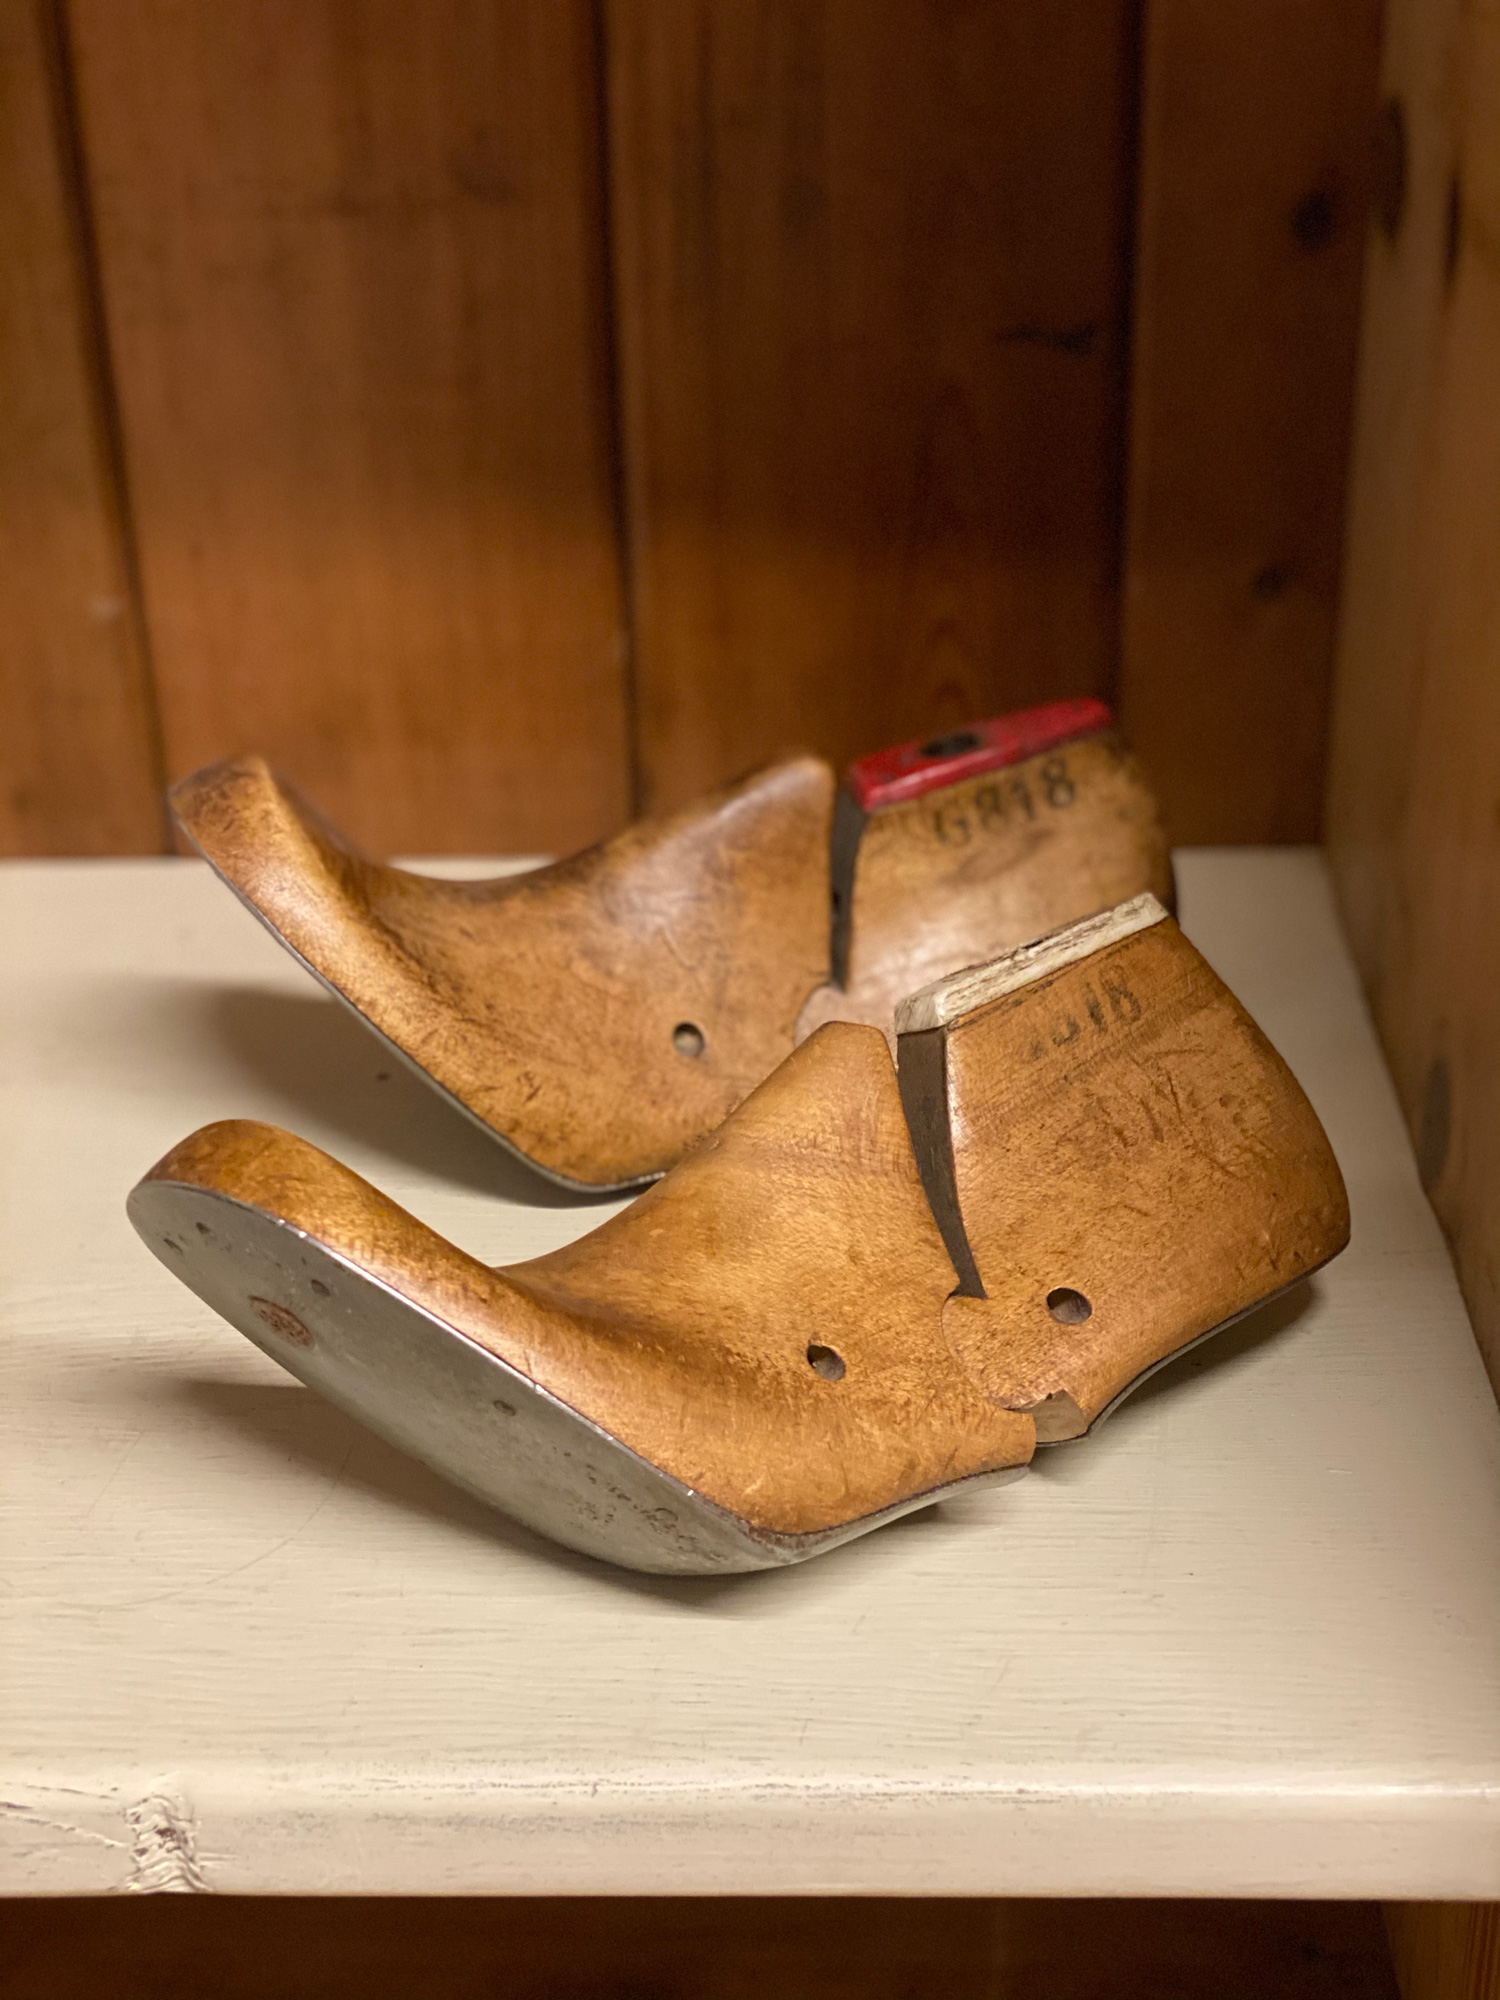 Wooden shoe lasts